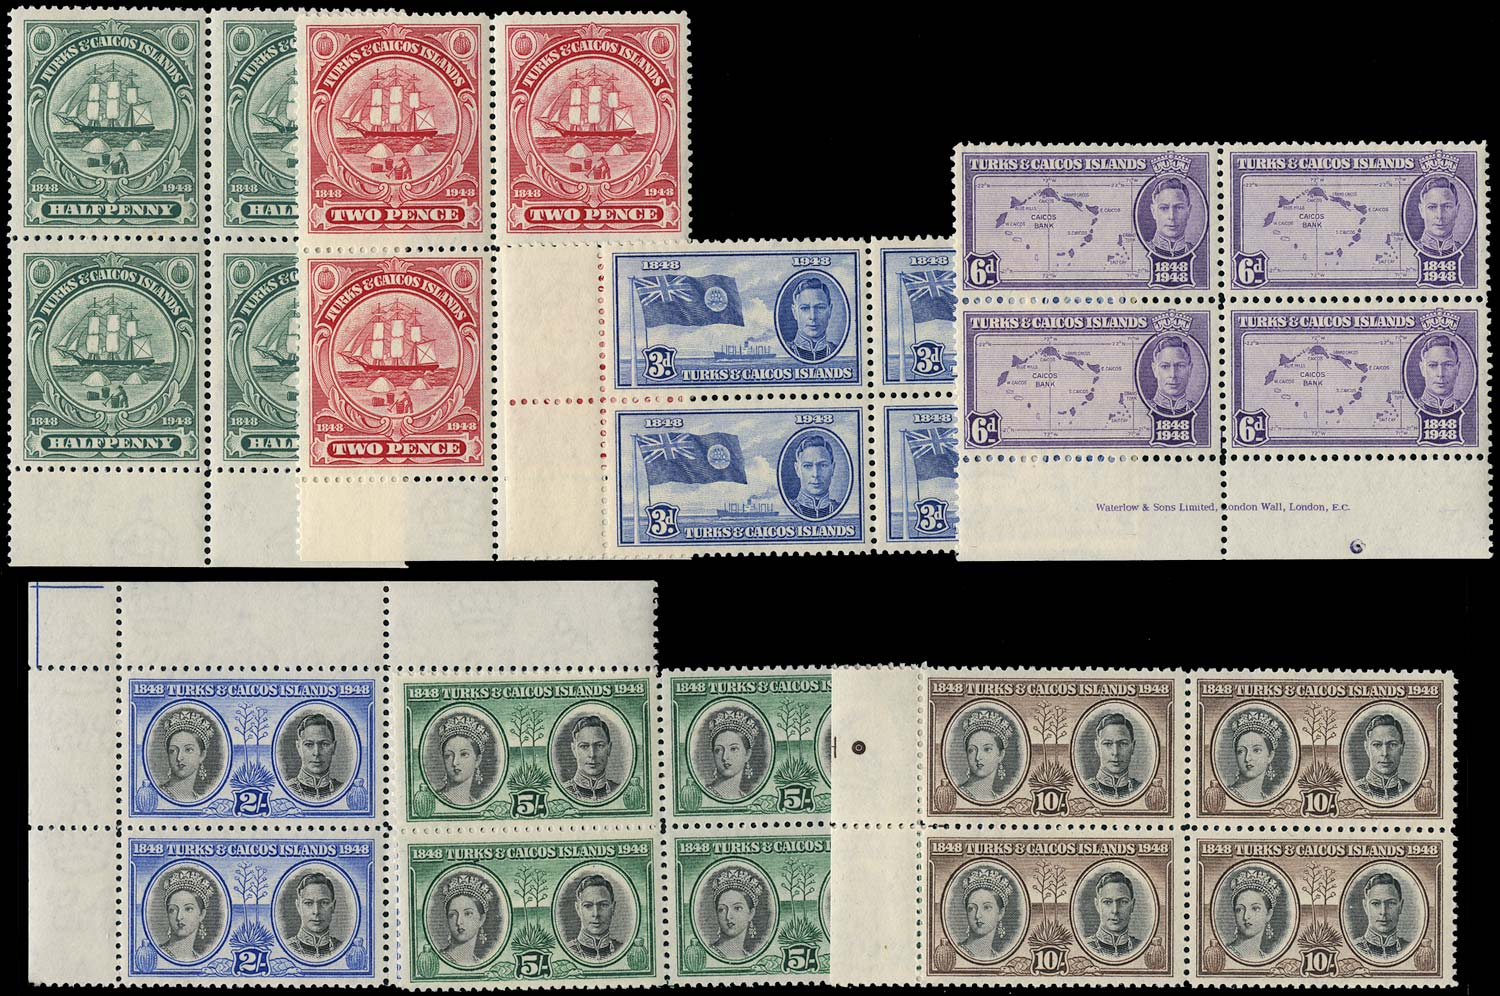 TURKS & CAICOS IS 1948  SG210/6 Mint Centenary of Separation set of 7 unmounted